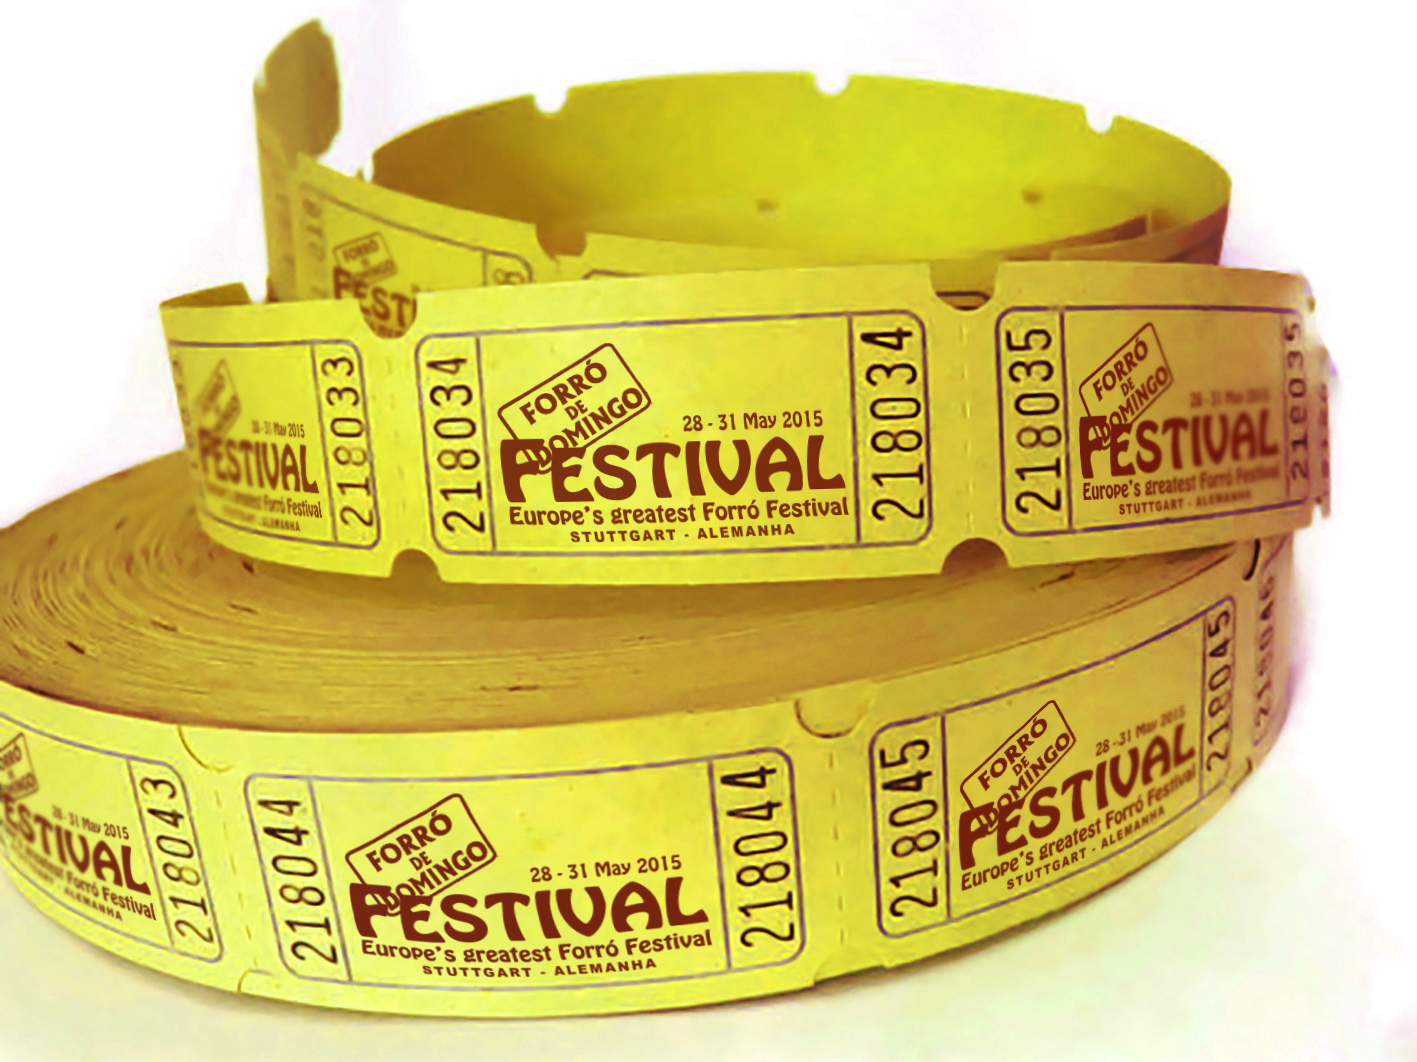 https://forrofestival.com/wp-content/uploads/2015/02/FdD-ticket_2-dias.jpg